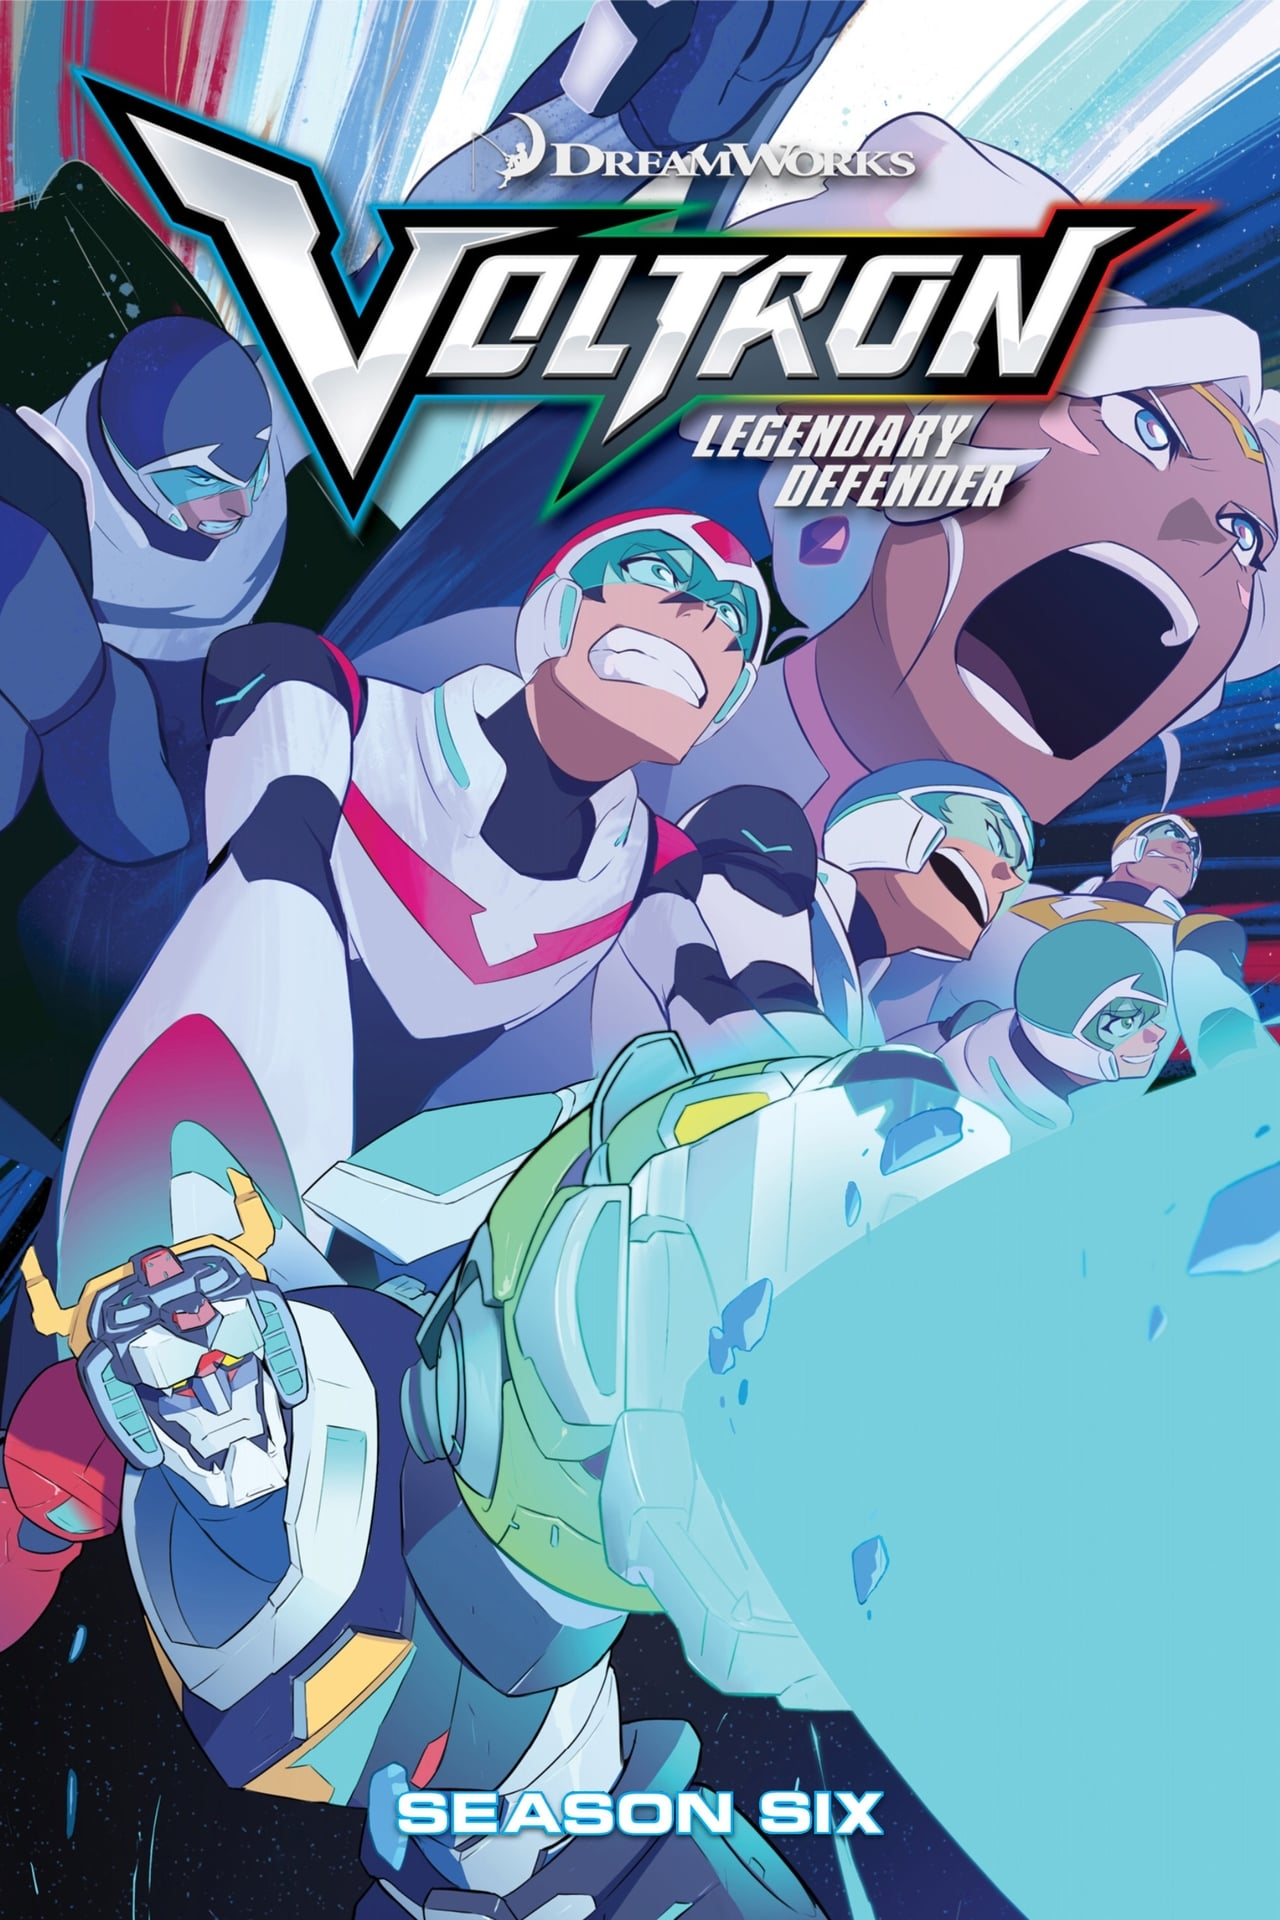 Voltron: Legendary Defender Season 6 (2018) putlockers cafe